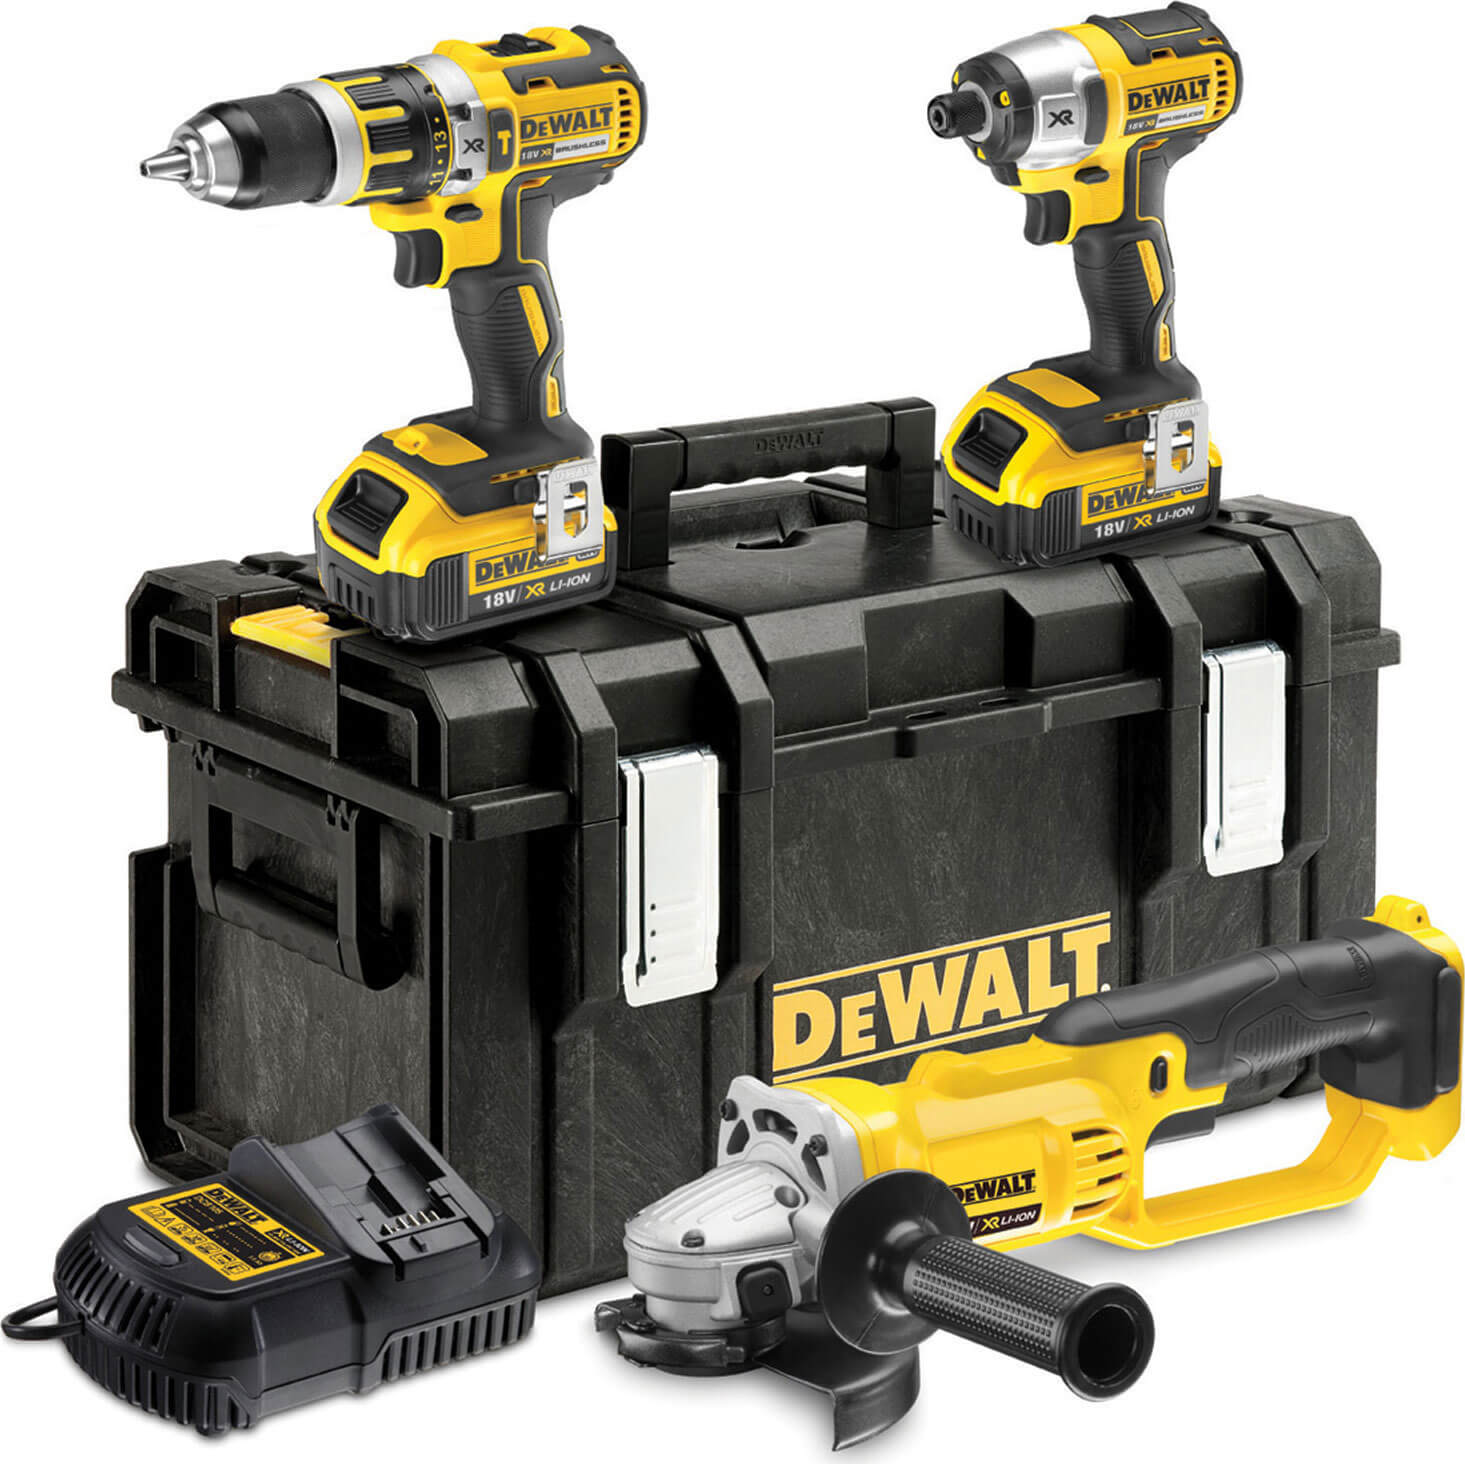 DeWalt DCK382M2 18v XR Cordless Brushless Tool Kit